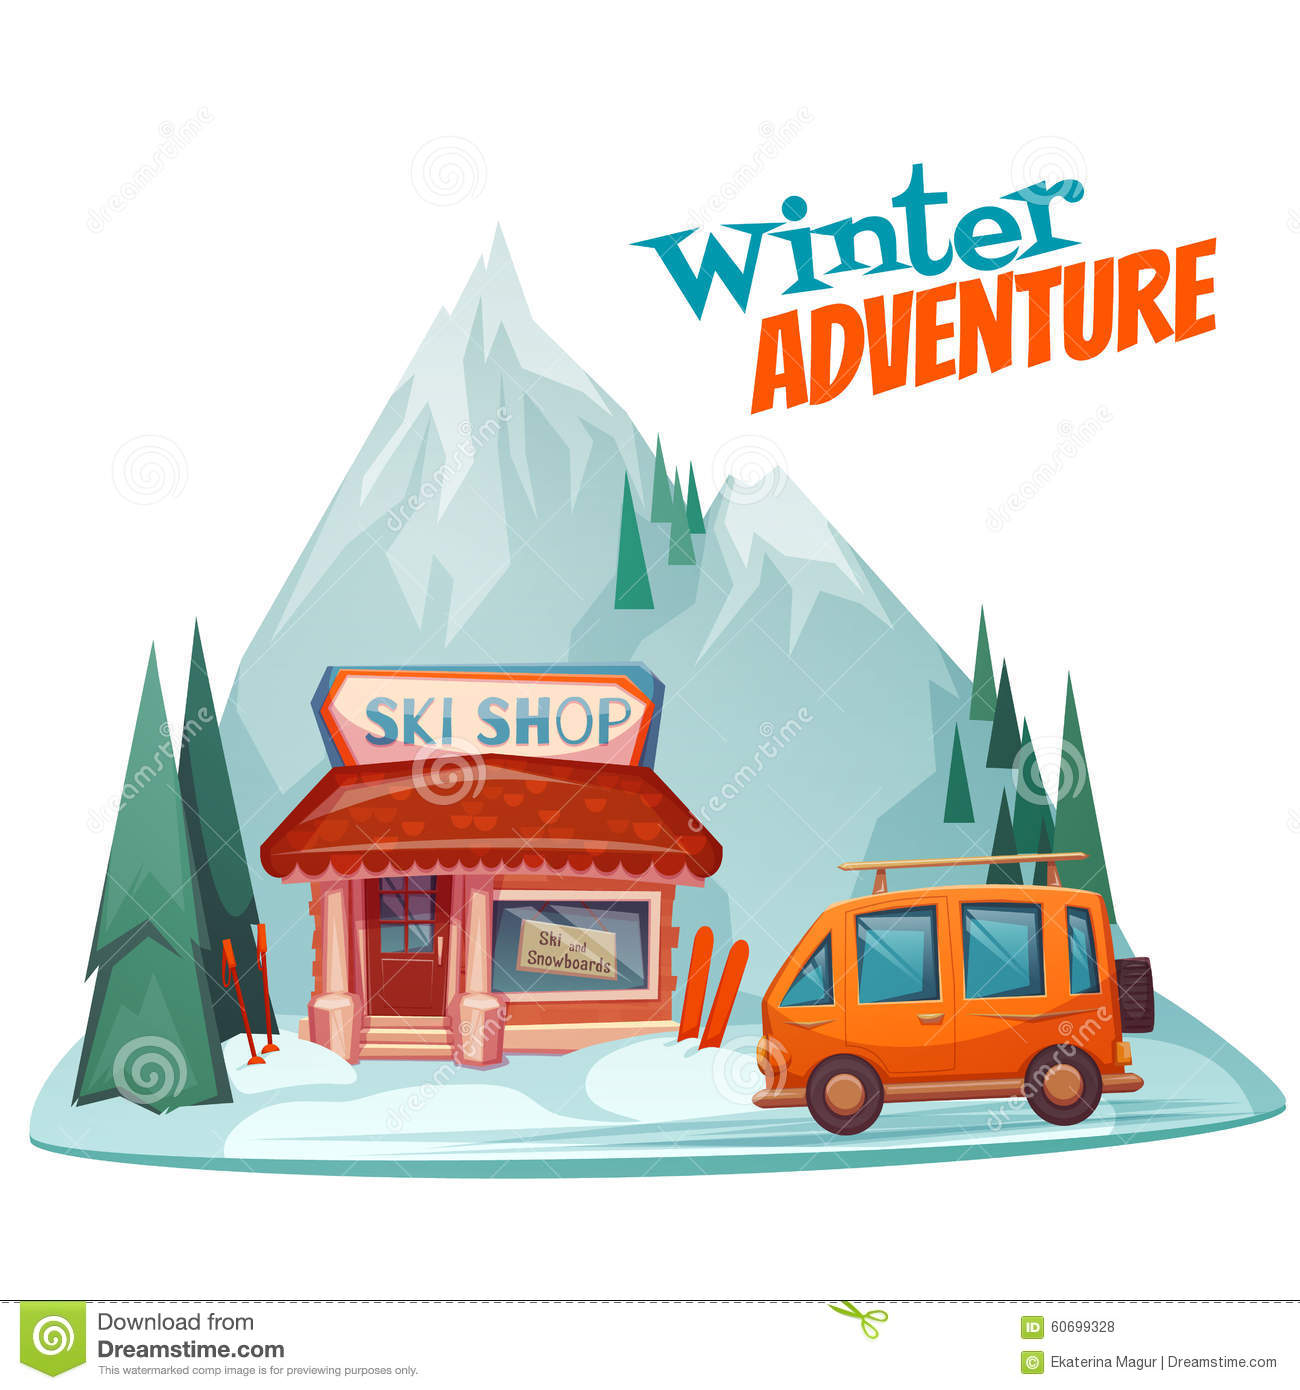 Ski shop business plan